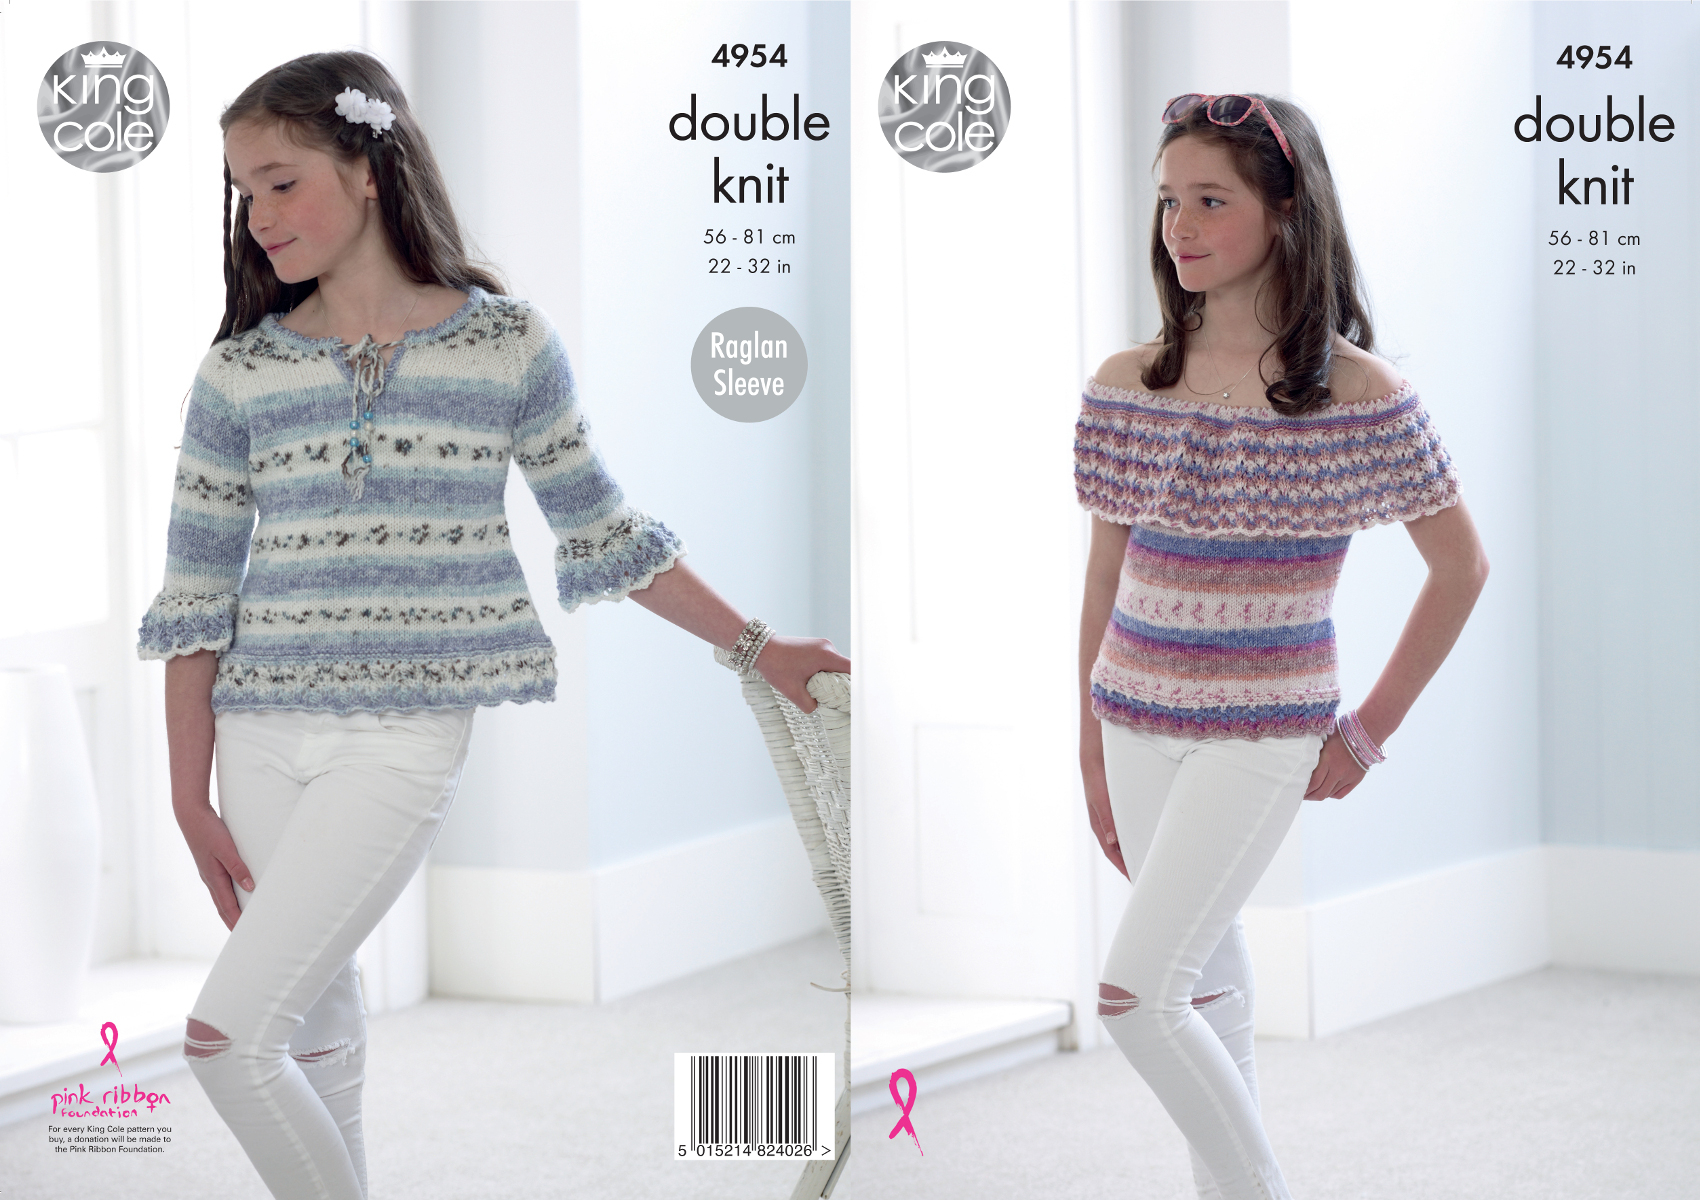 Off The Shoulder Sweater Knitting Pattern Details About Girls Double Knitting Pattern King Cole Off Shoulder Top Raglan Sweater 4954